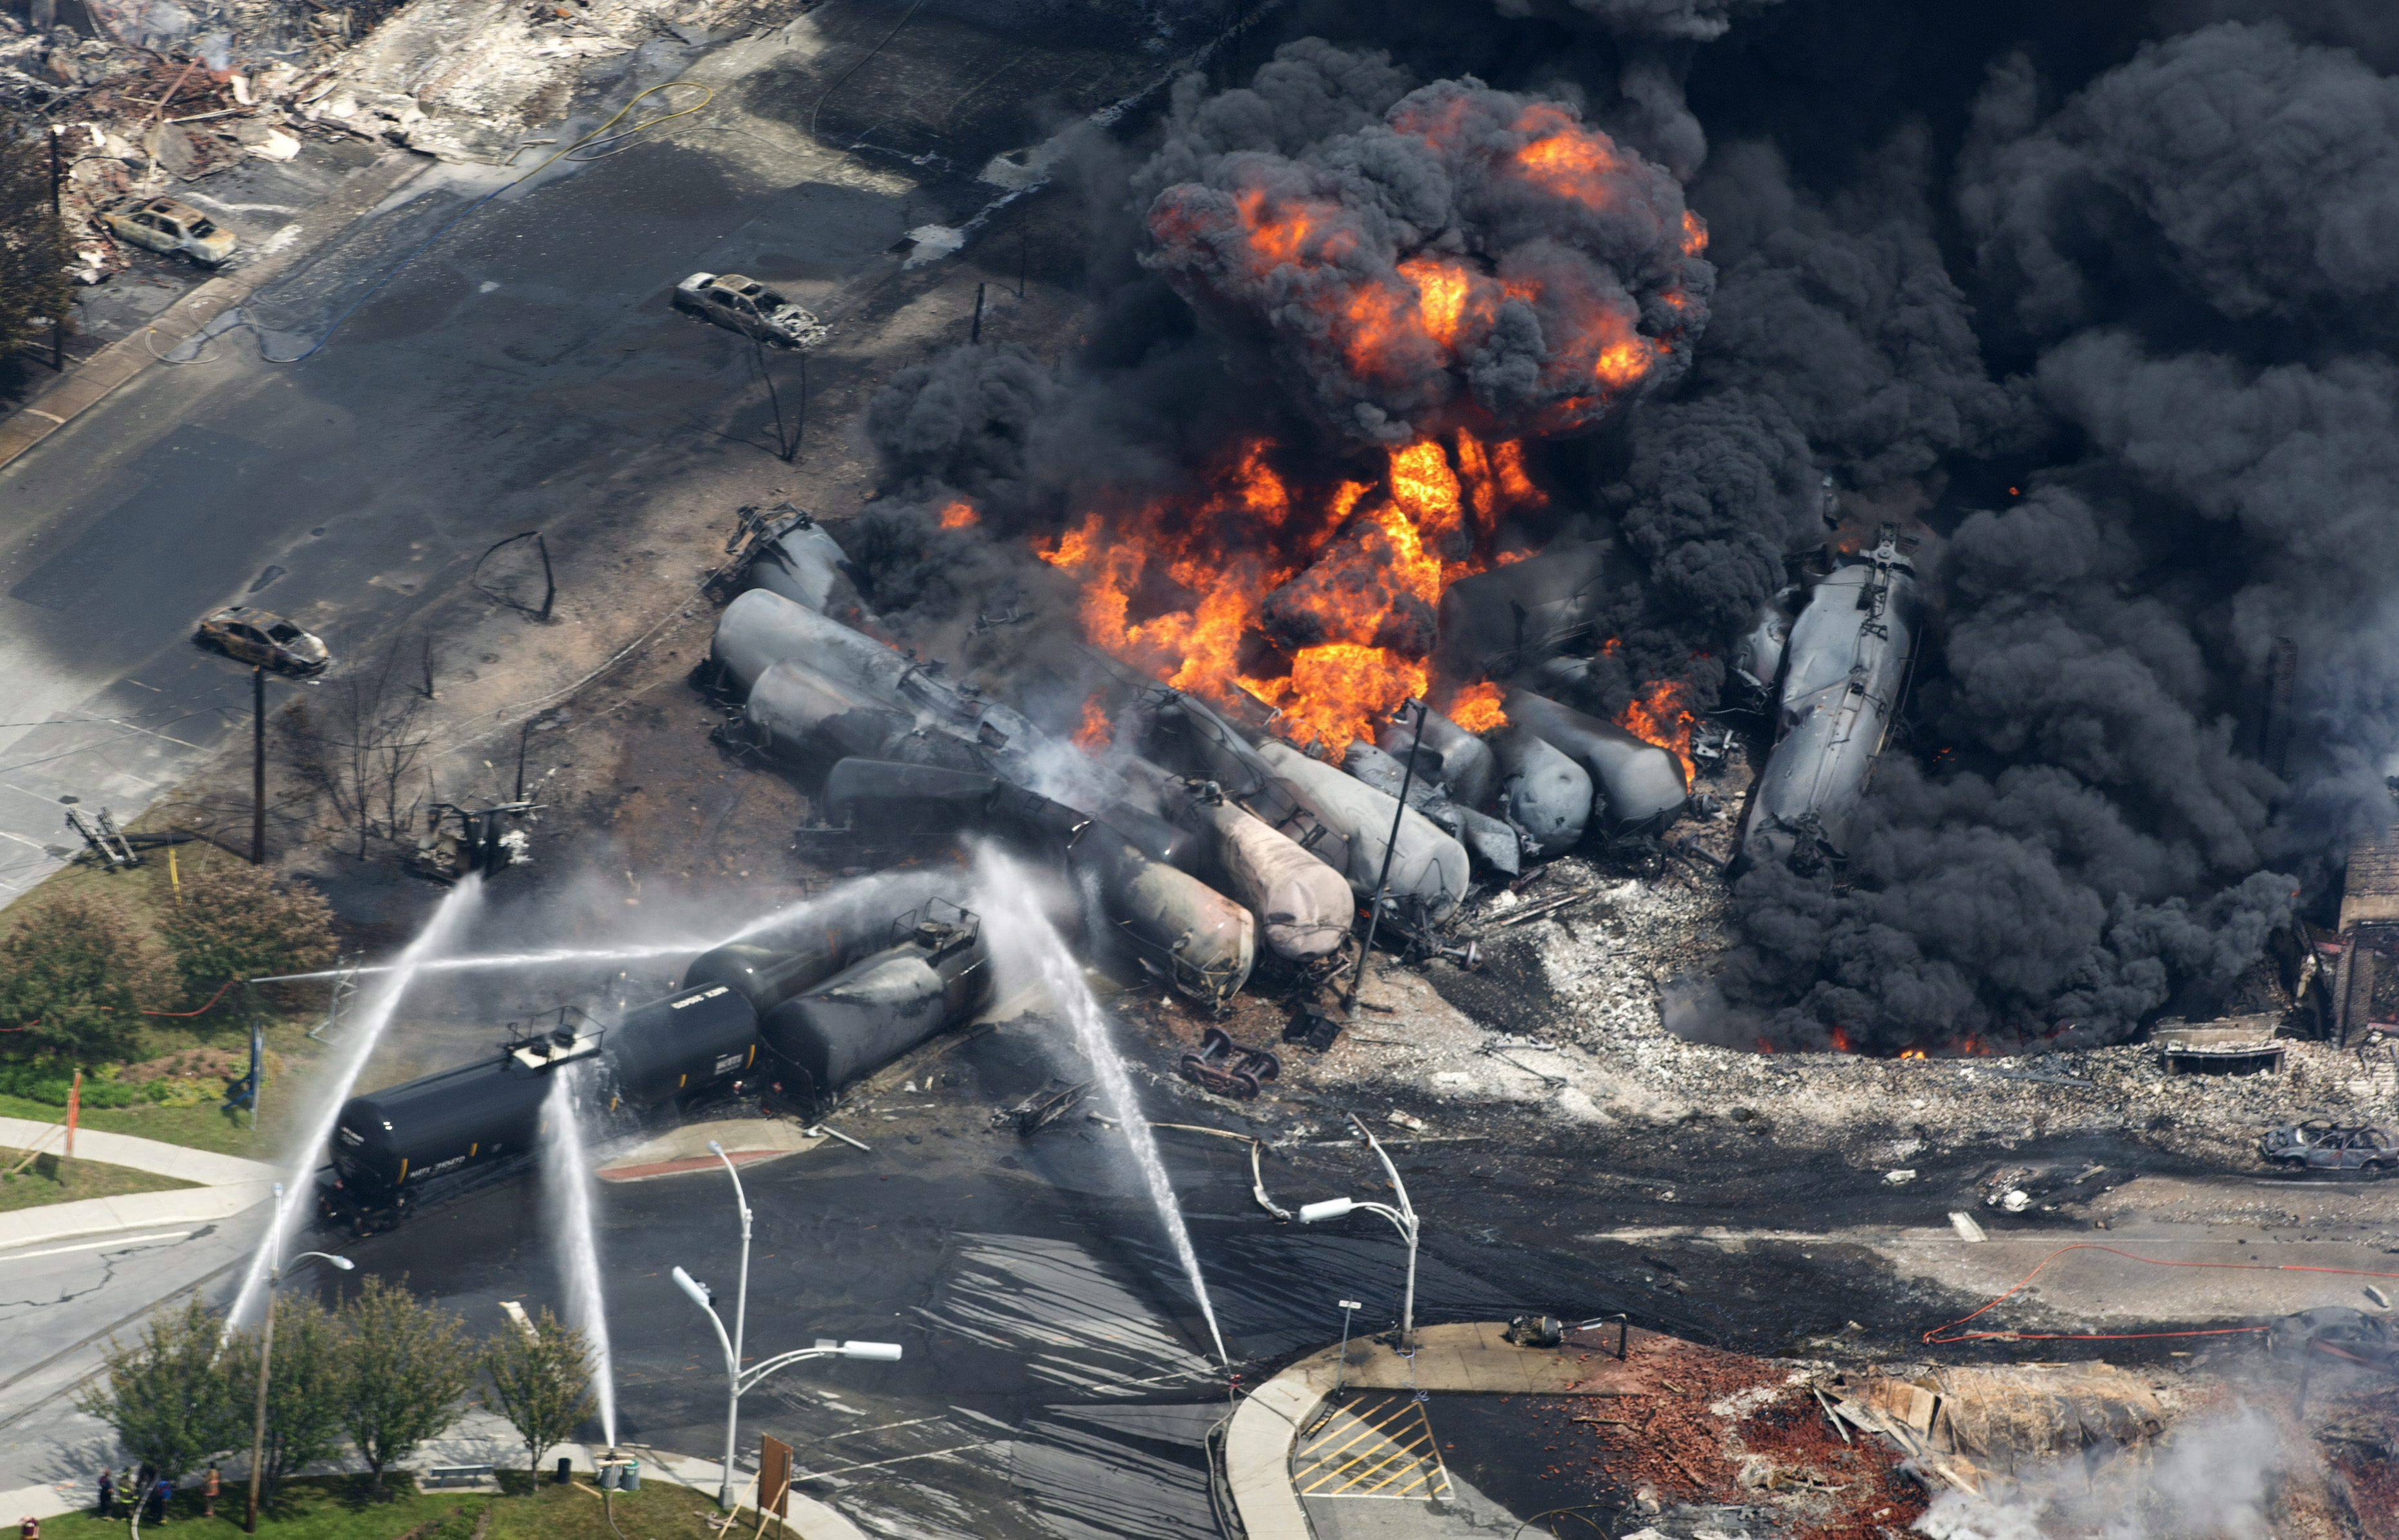 This July 6, 2013 photo shows smoke rising from railway cars carrying crude oil after derailing in downtown Lac Megantic, Quebec. A string of fiery train derailments across the country has triggered a high-stakes and behind-the-scenes campaign to shape how the government responds to calls for tighter safety rules.